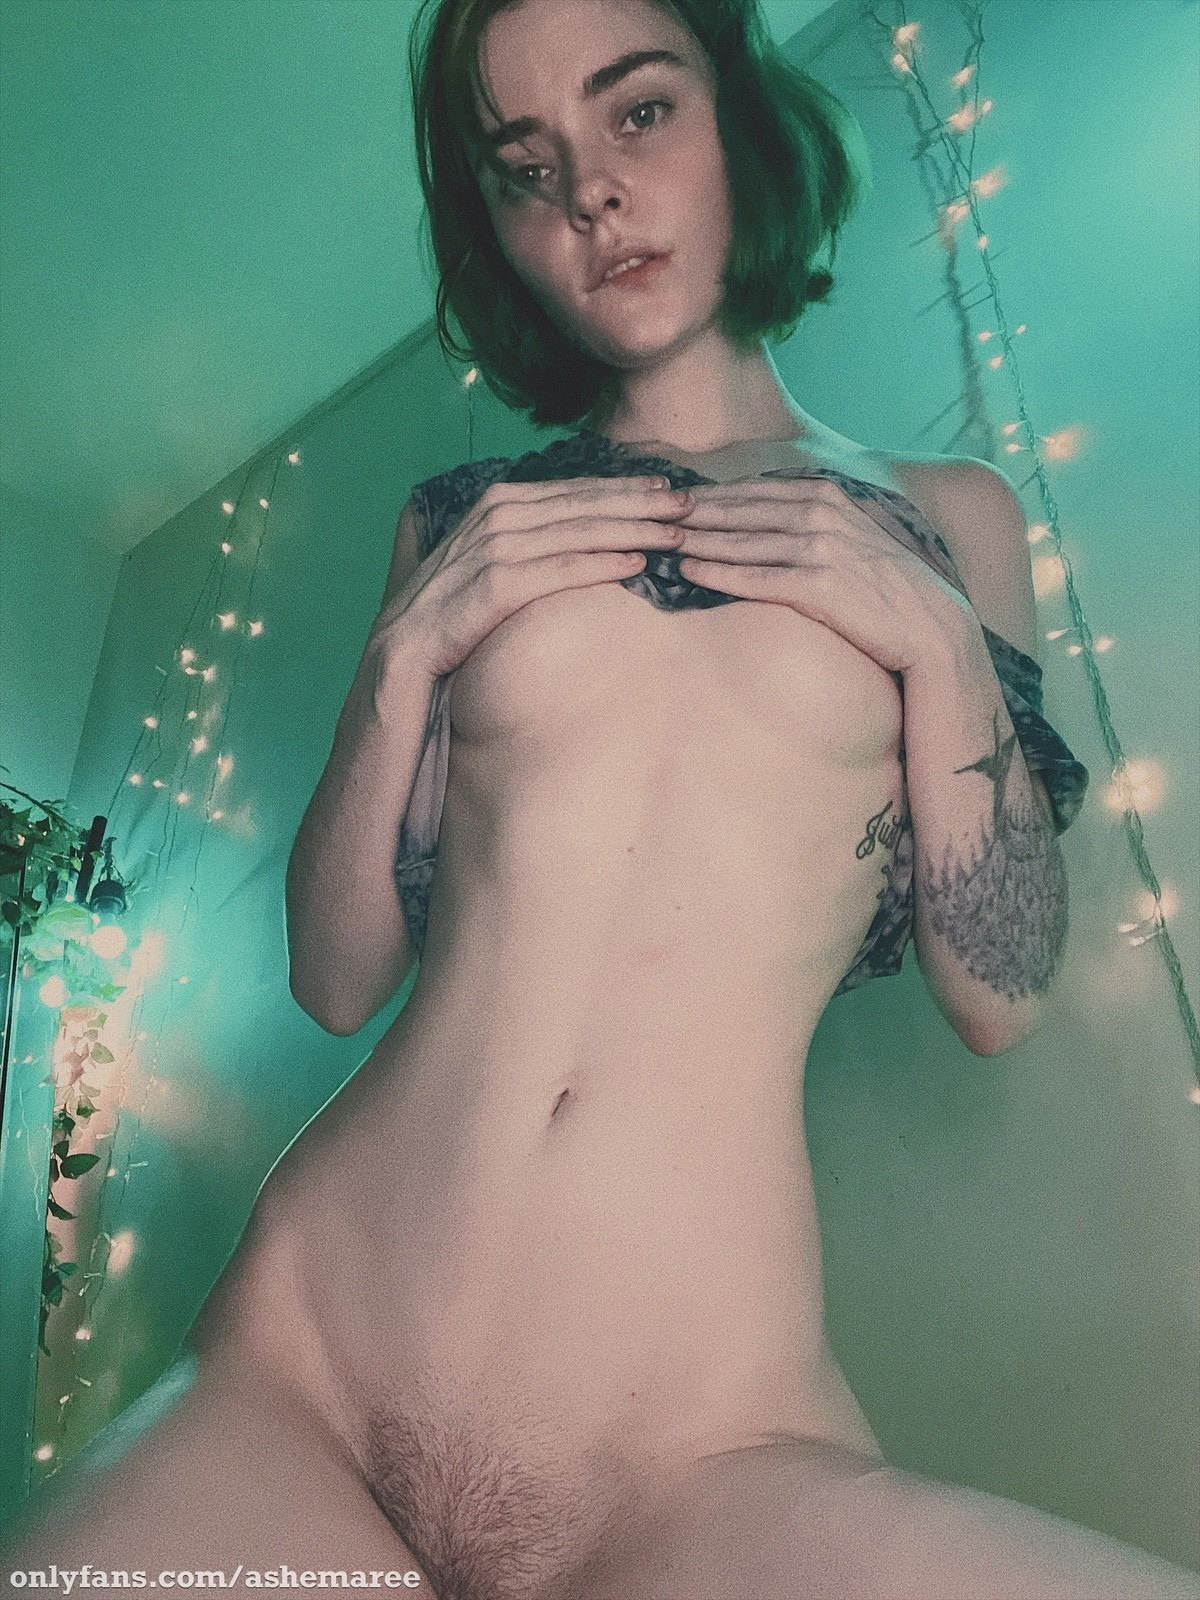 ASHE MAREE Onlyfans leaked nudes thothub.vip (1).jpg